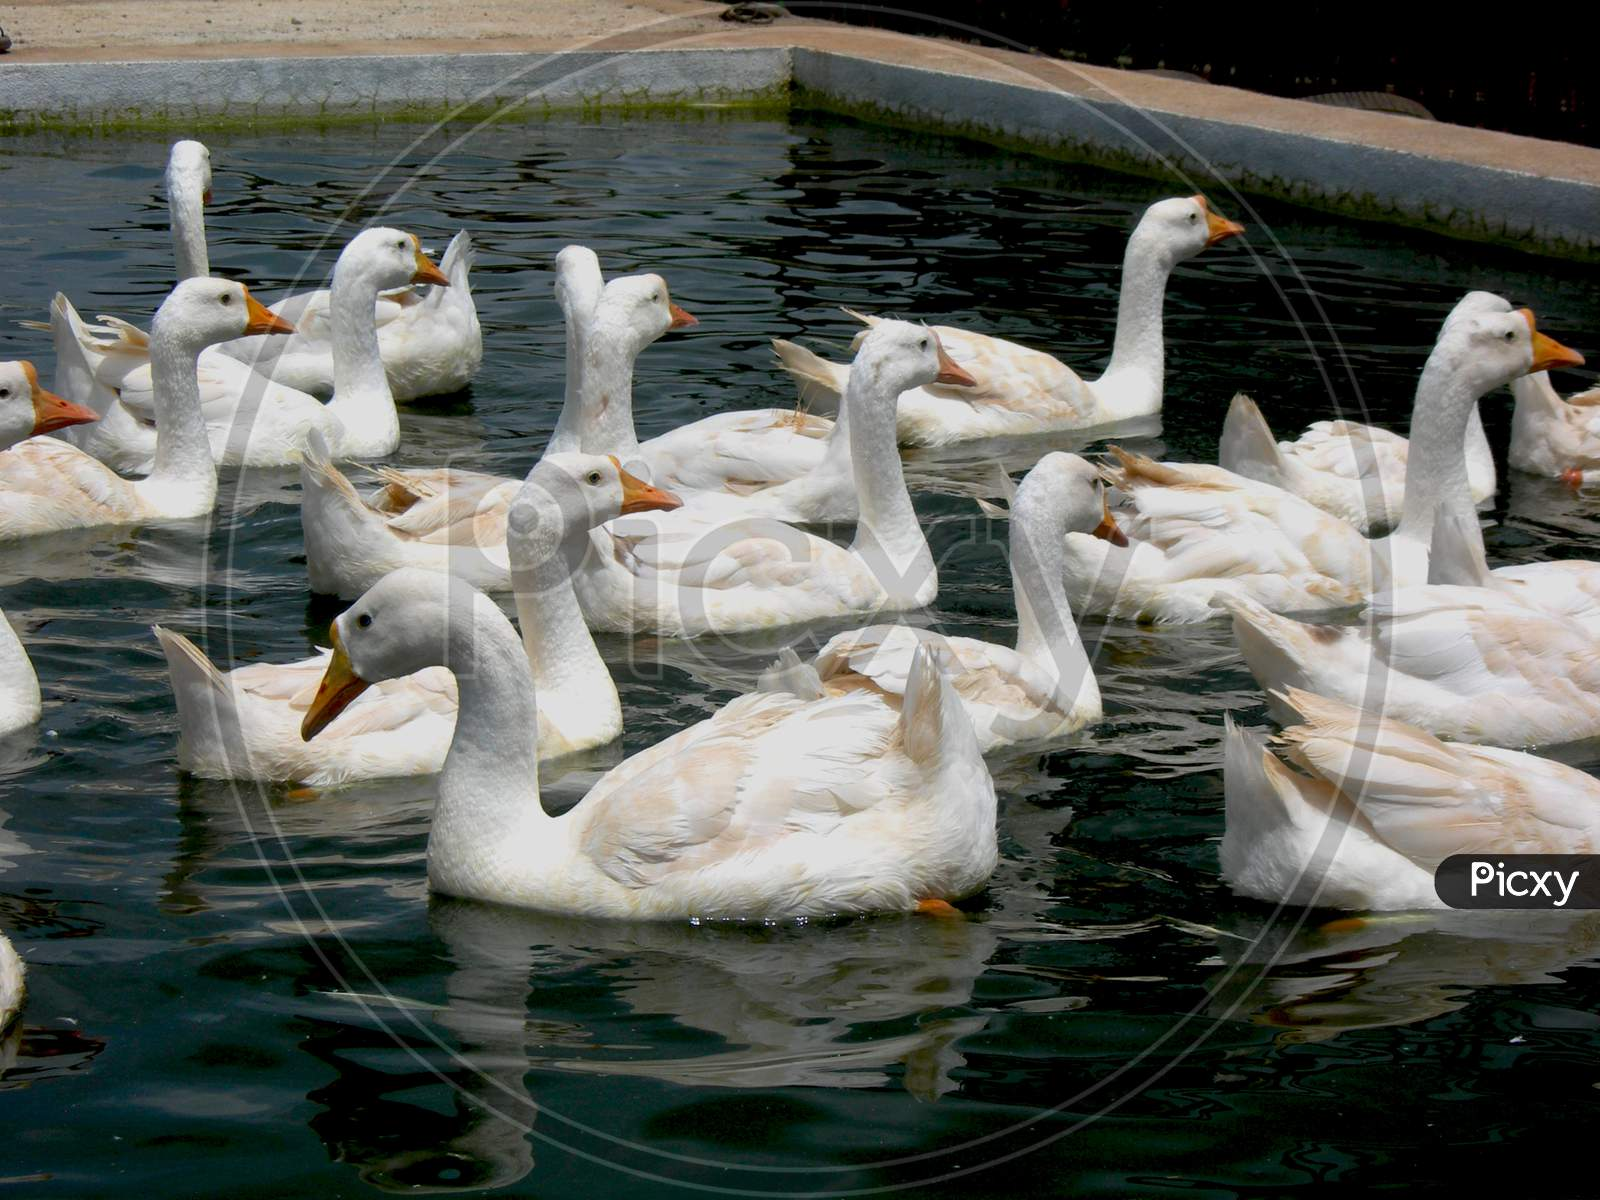 Image Of A Group Of White Duck In A Pond Also Called Swans Or A Geese Ts237355 Picxy